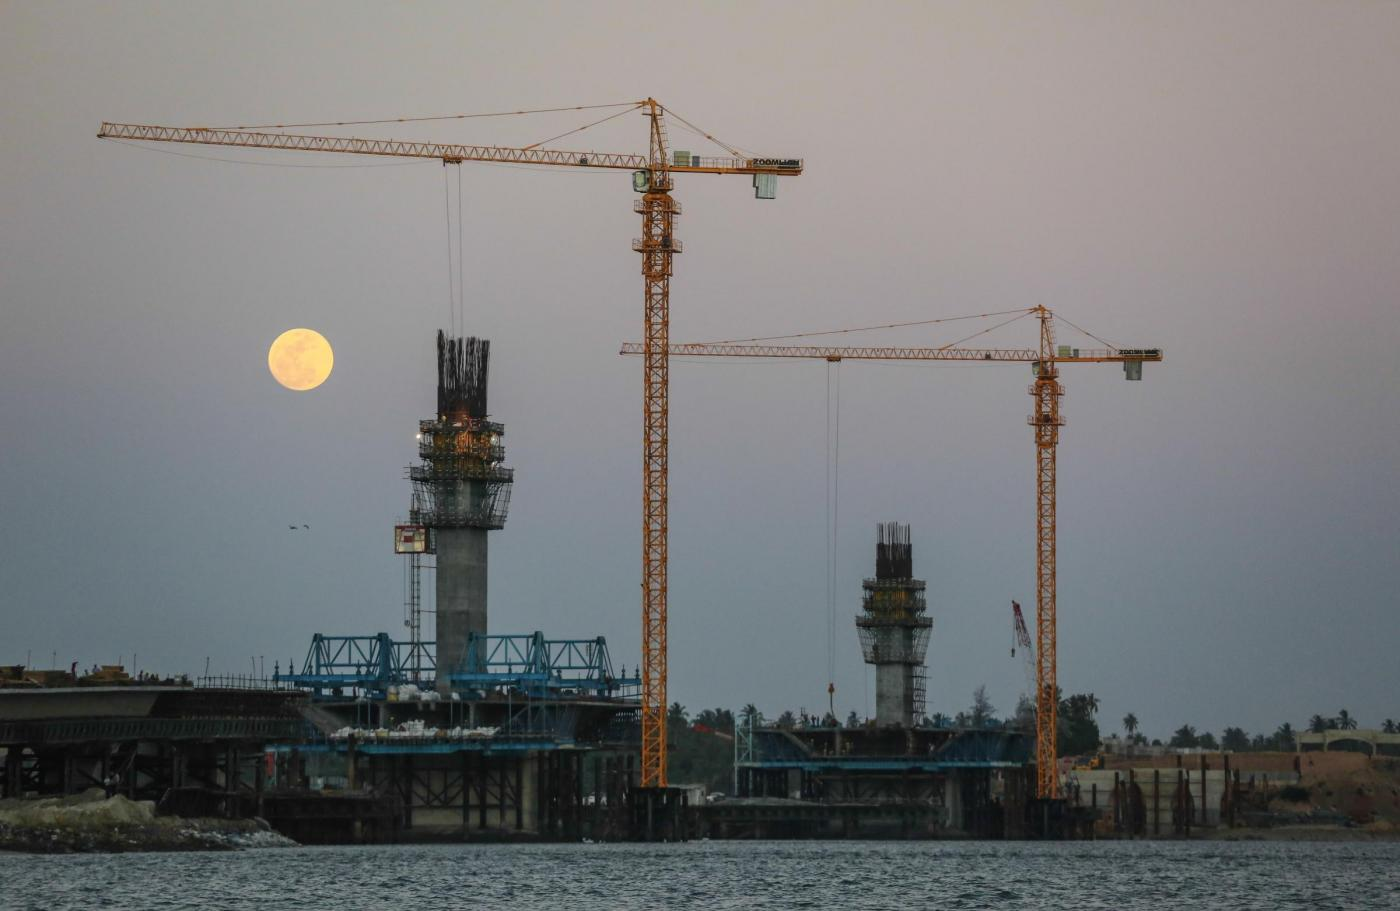 (141108) -- DAR ES SALAAM, Nov. 8, 2014 -- Photo taken on Nov. 6, 2014 shows the cross-sea Kigamboni Bridge under construction in Tanzania. Being executed by China Railways Construction Engineering Group in partnership with China Major Bridge Engineering Co. Ltd, the 680-meter-long Kigamboni Bridge, Tanzania's first cable-stayed bridge will improve the traffic condition of the economic capital and boost the socio-economic growth of the Kigamboni area. (Xinhua/Zhang Chen)